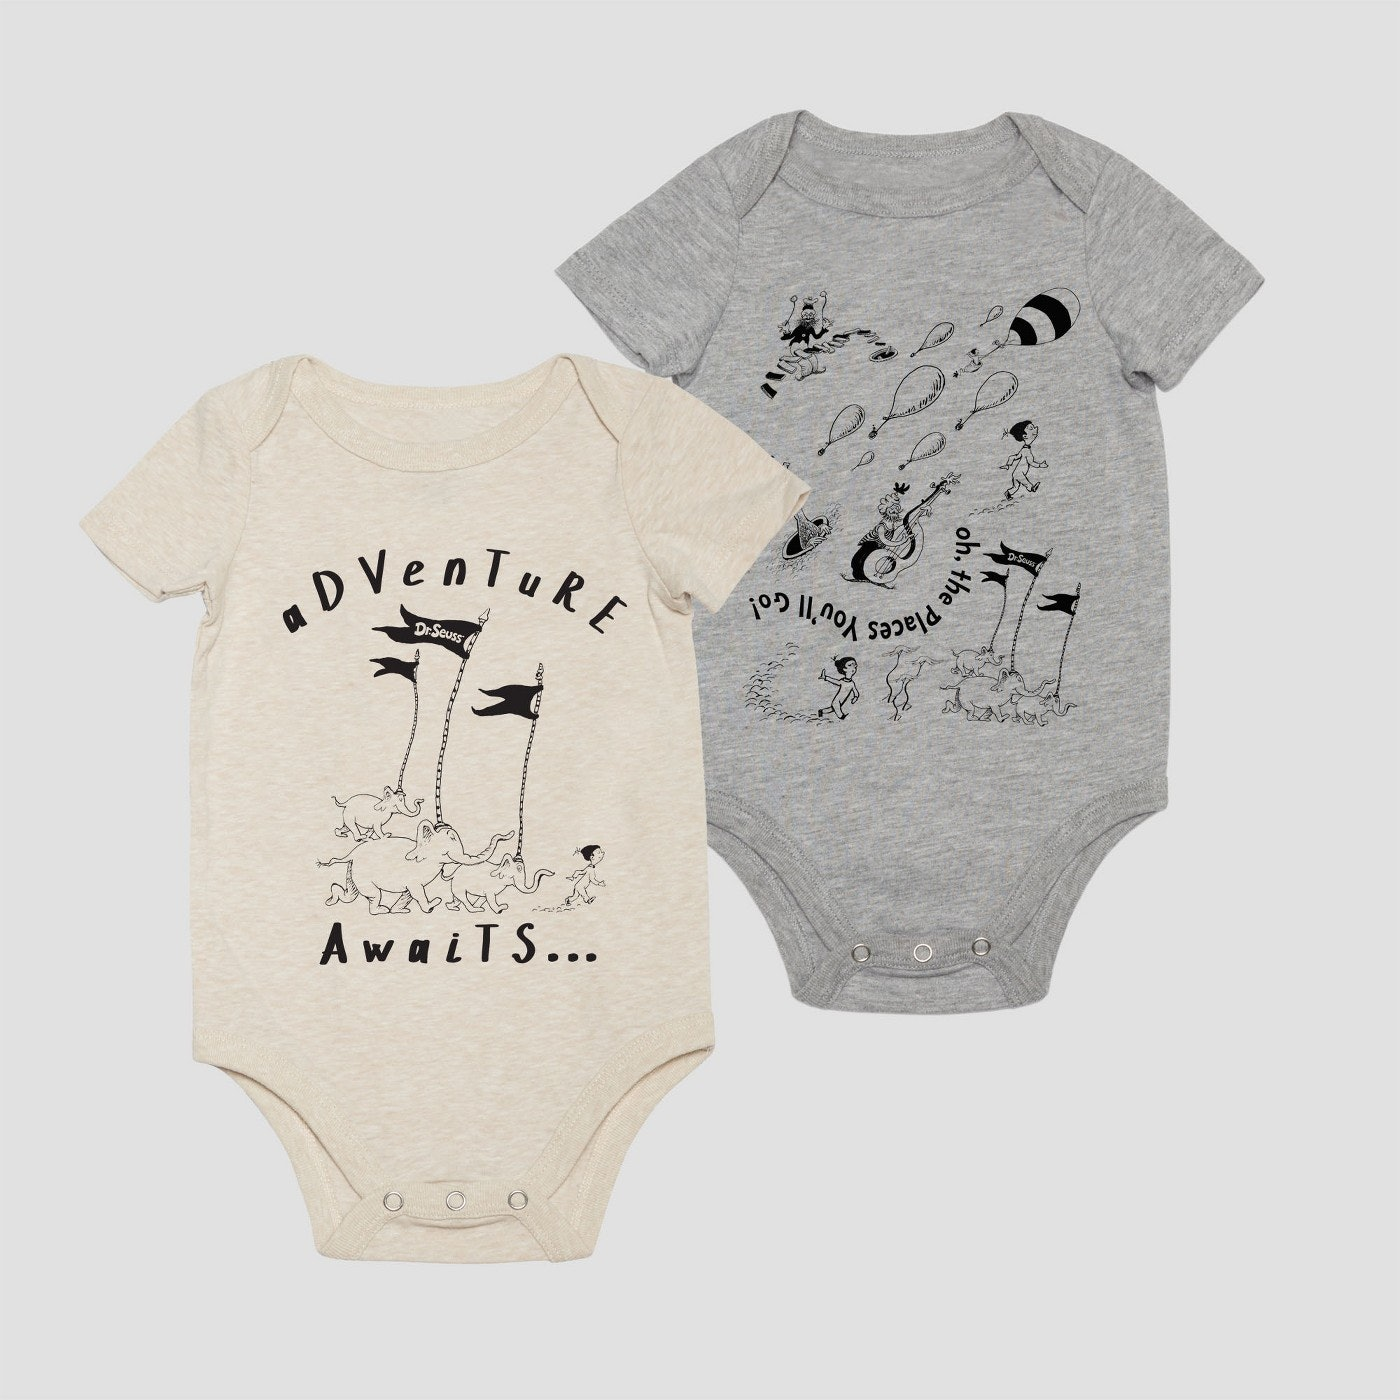 86ce0d5f7d5 15 Cute Gender-Neutral Baby Clothes From Target